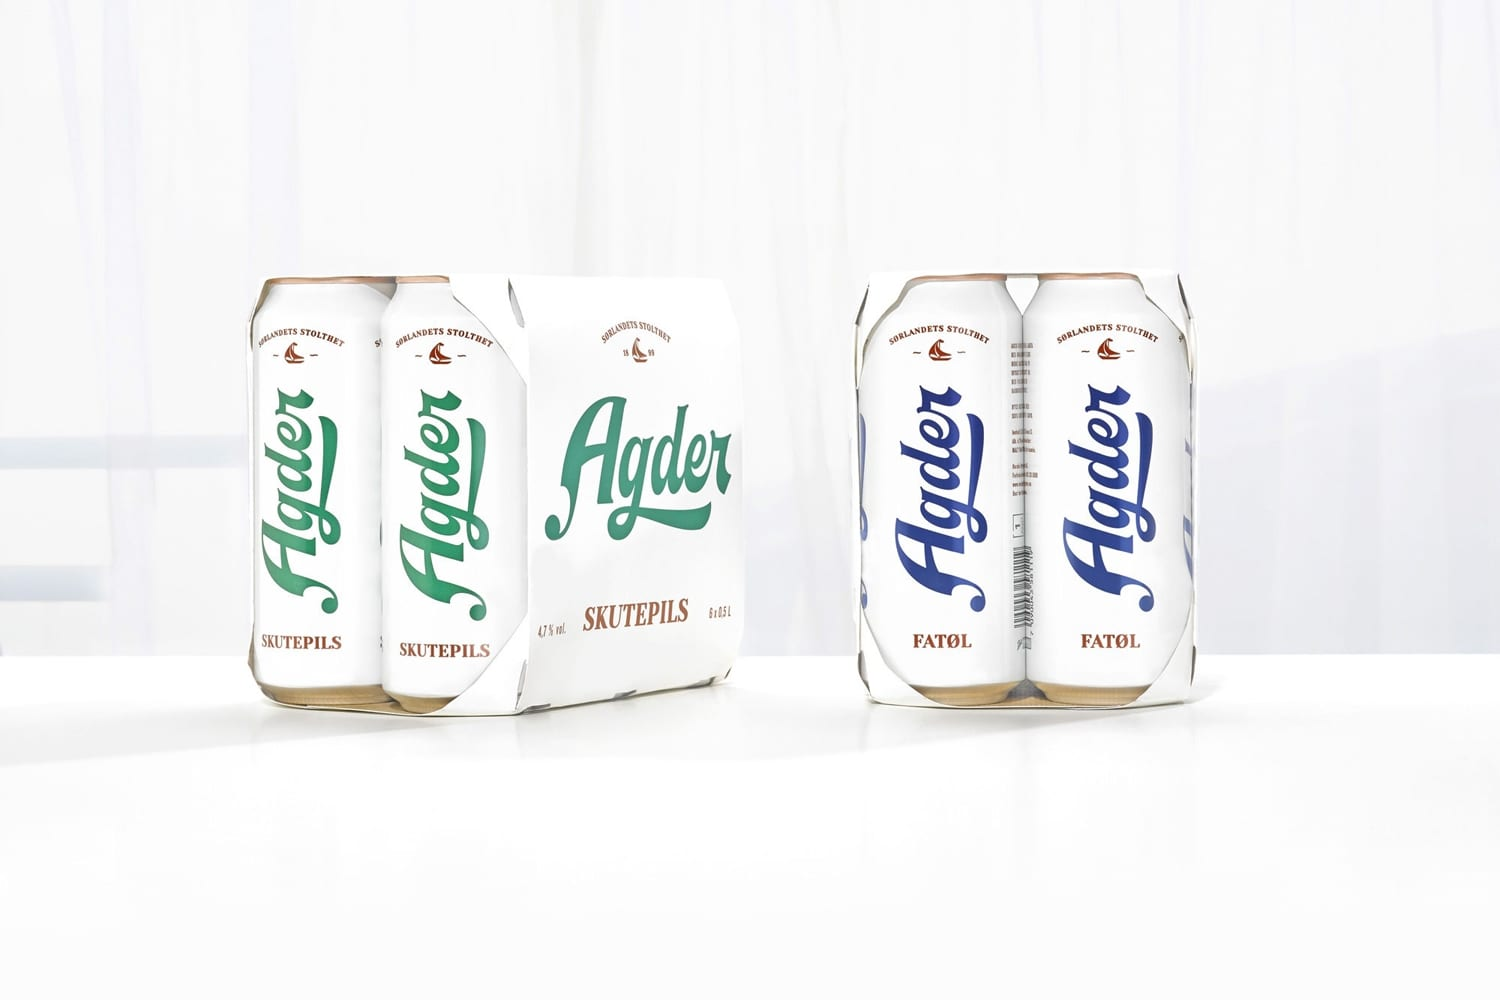 01 Agder Bryggeri Local Beer Branding Packaging Frank Norway BPO - Ach, tie obaly – Agder Bryggeri by Frank